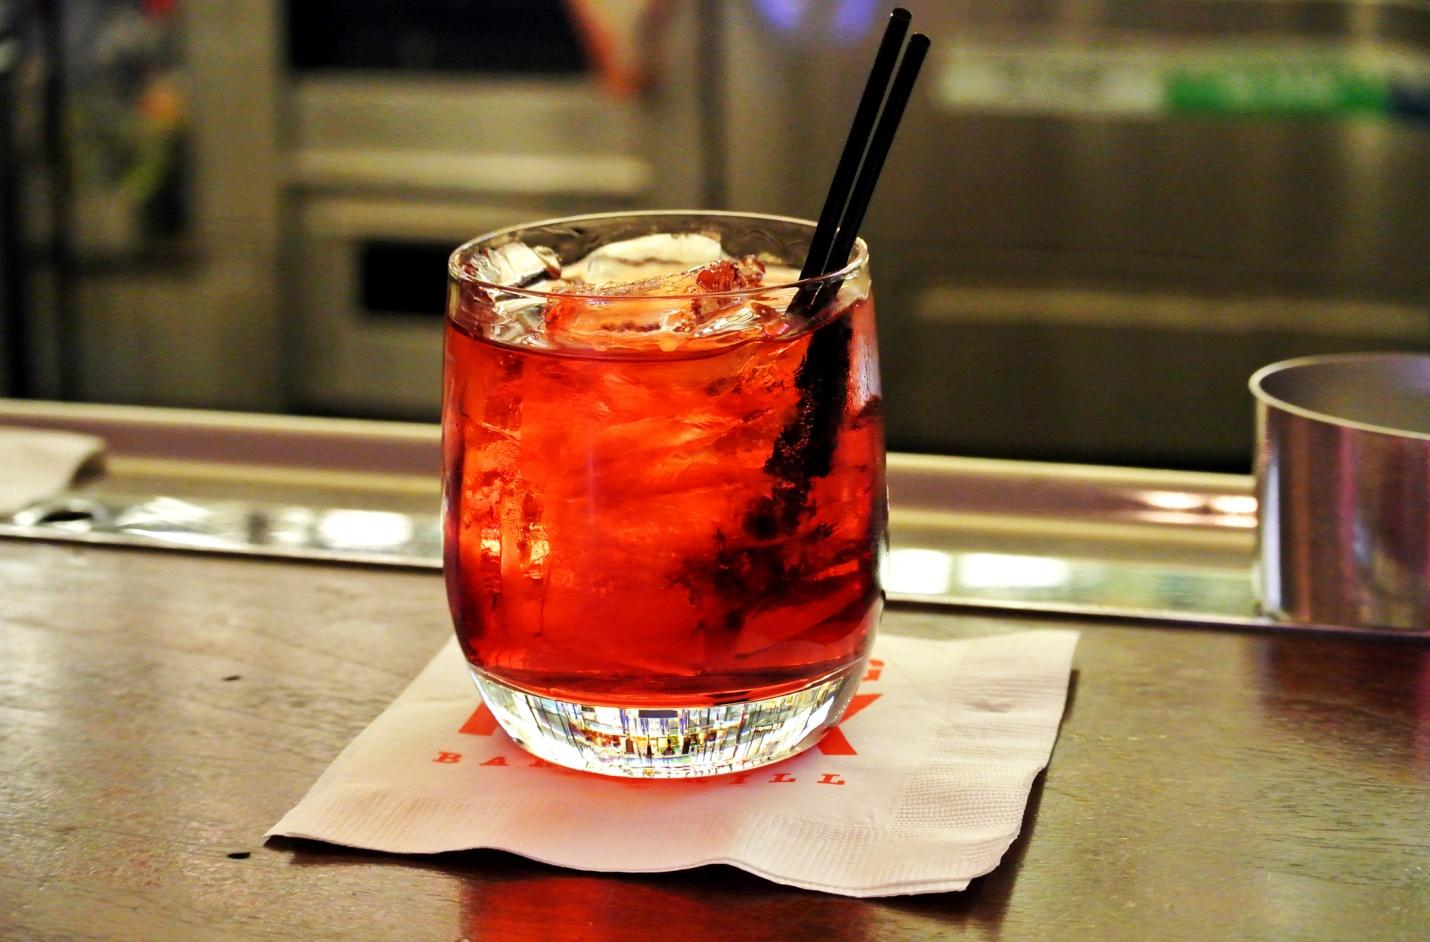 A finger-stirred Negroni is what you need in the summer heat